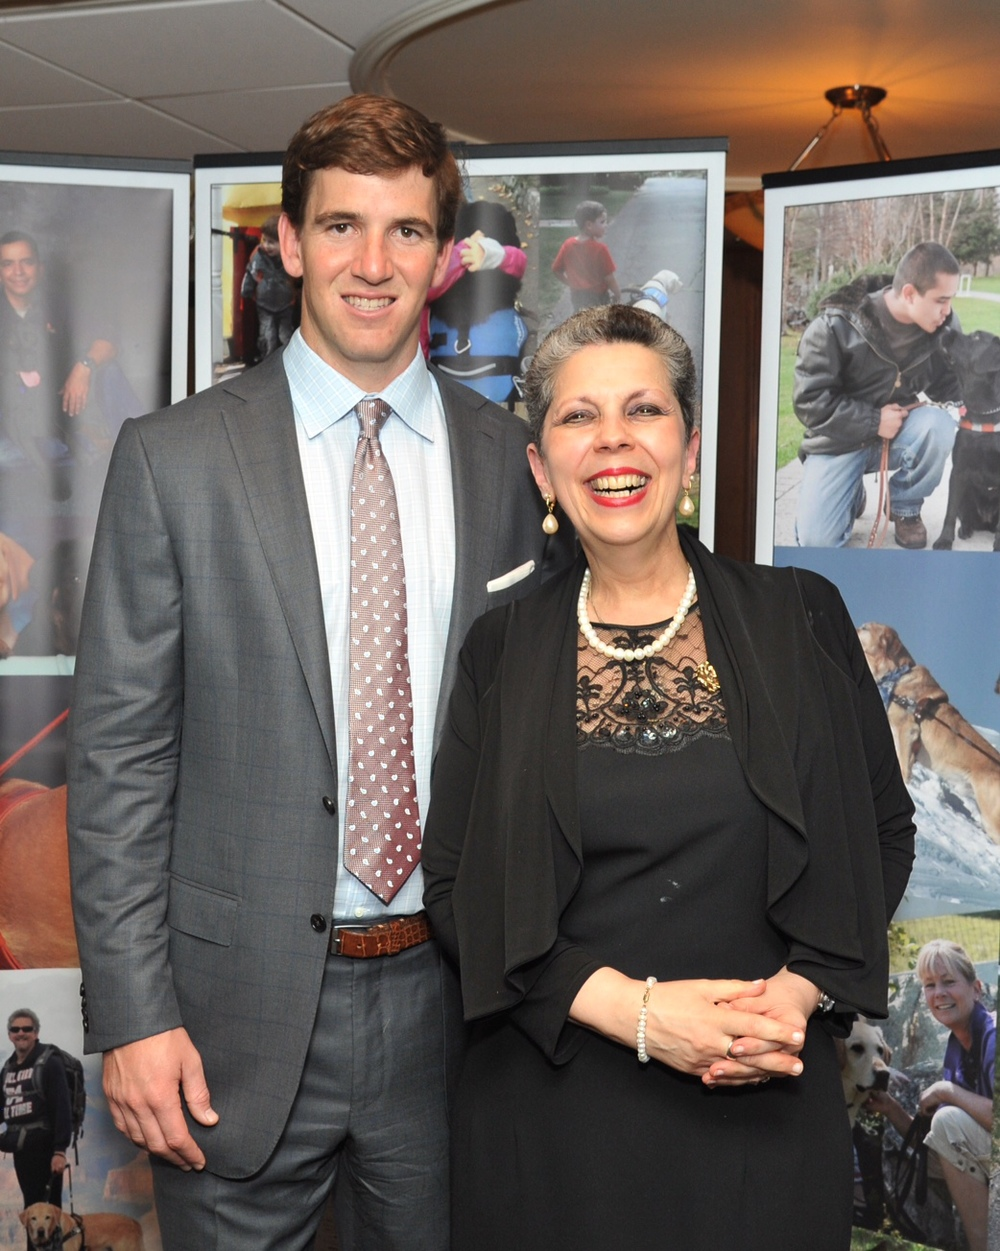 Eli Manning was kind enough to pose for pictures, including some with Yours Truly. Photograph by John Vecchiola.